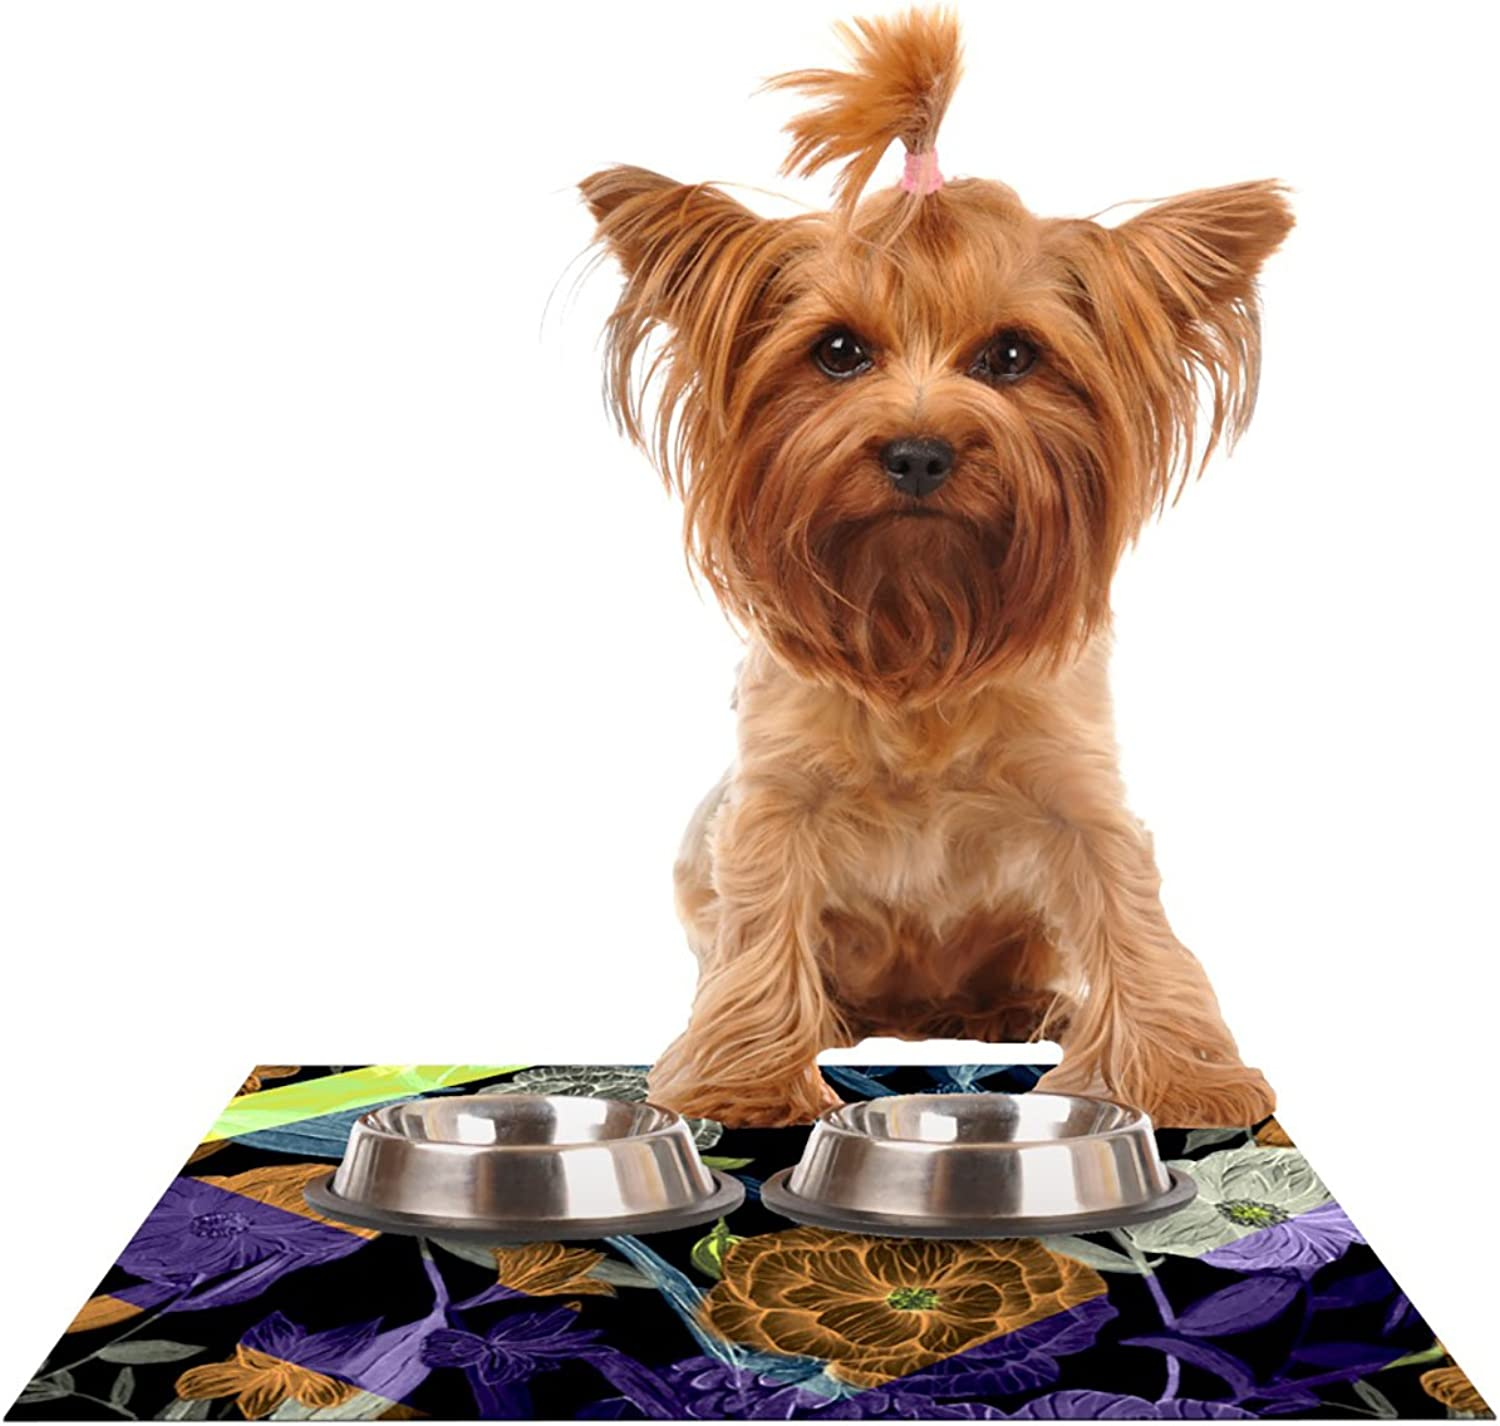 KESS InHouse Gabriela Fuente Wonder  Pet Bowl Placemat for Dog and Cat Feeding Mat, 24 by 15Inch, Dark Flower